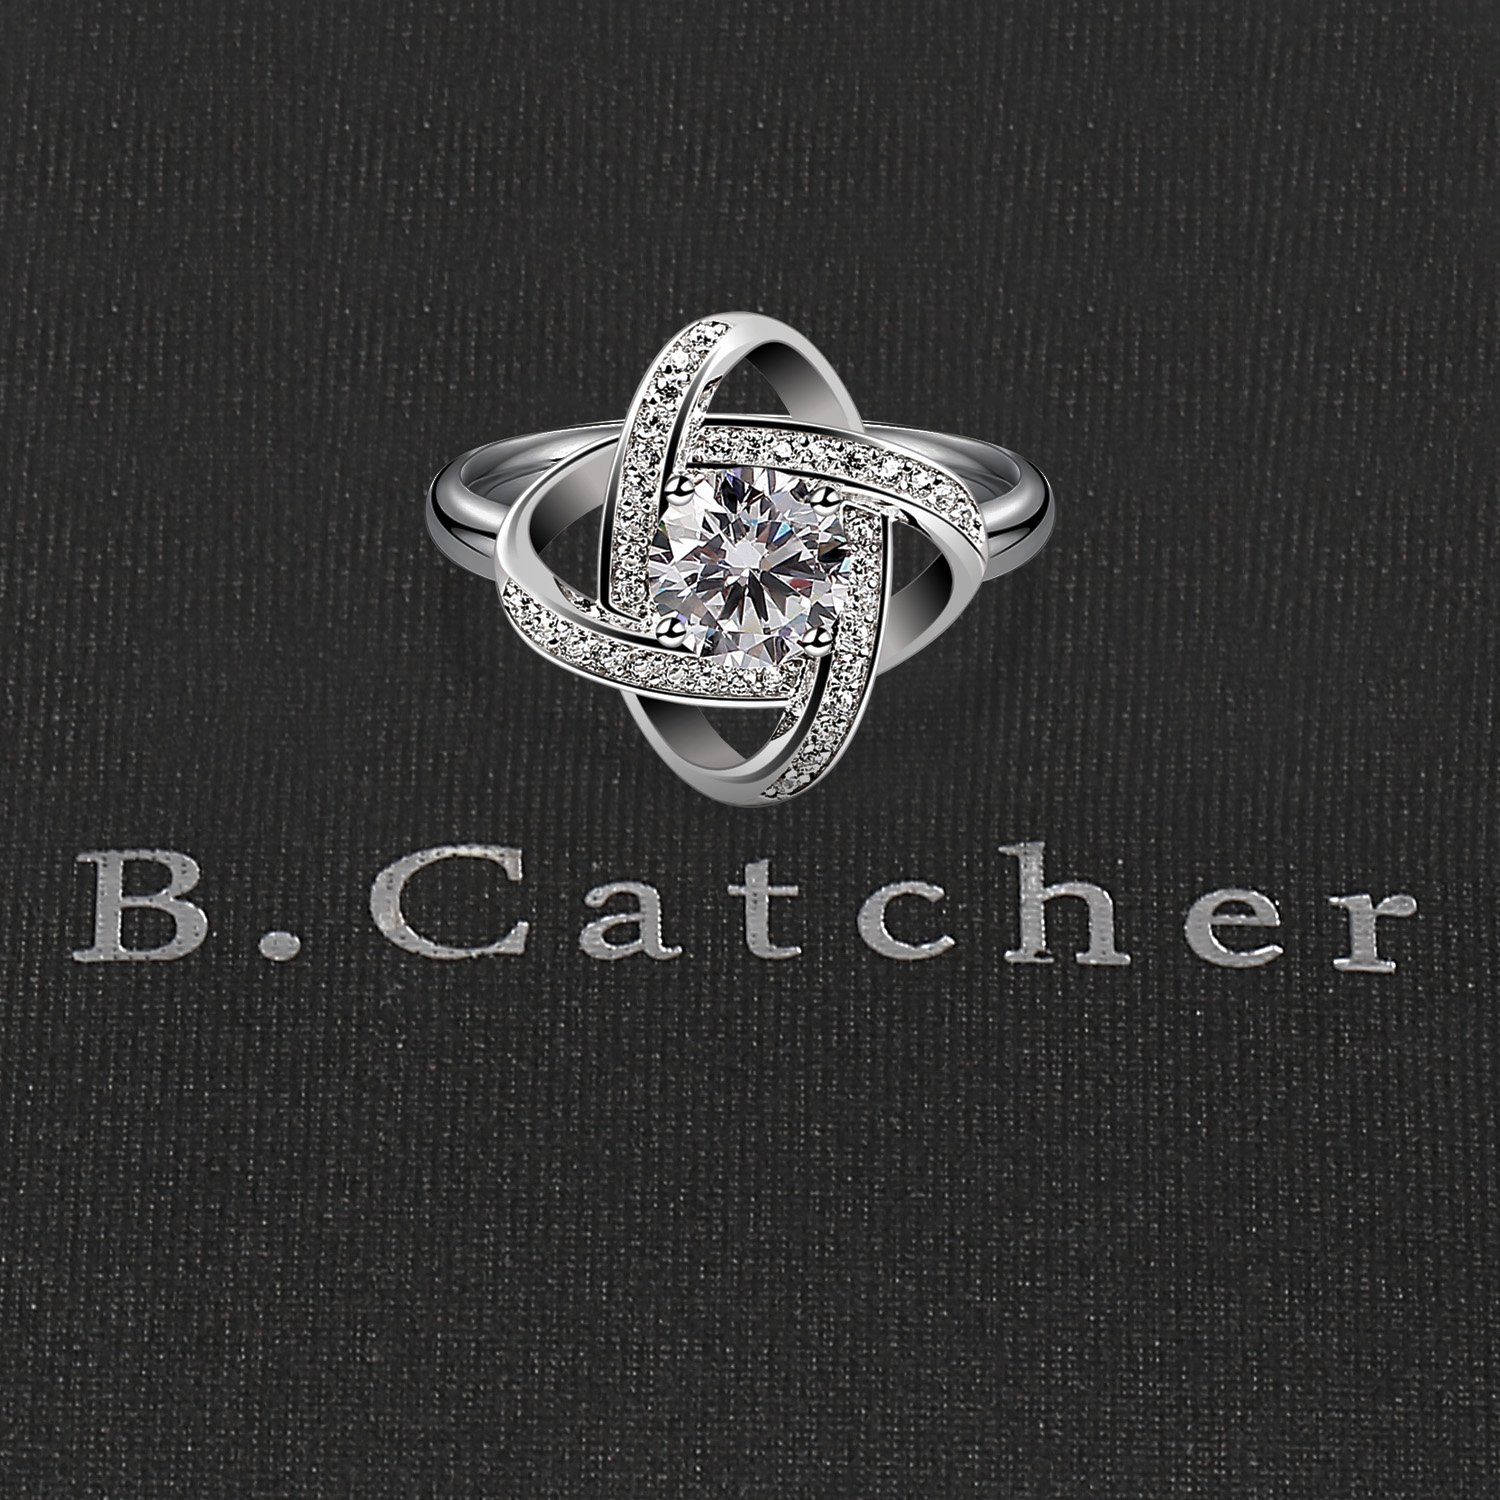 B.Catcher Women's Ring Adjustable 925 Sterling Silver Cubic Zirconia Valentine's Gift for Her by B.Catcher (Image #4)